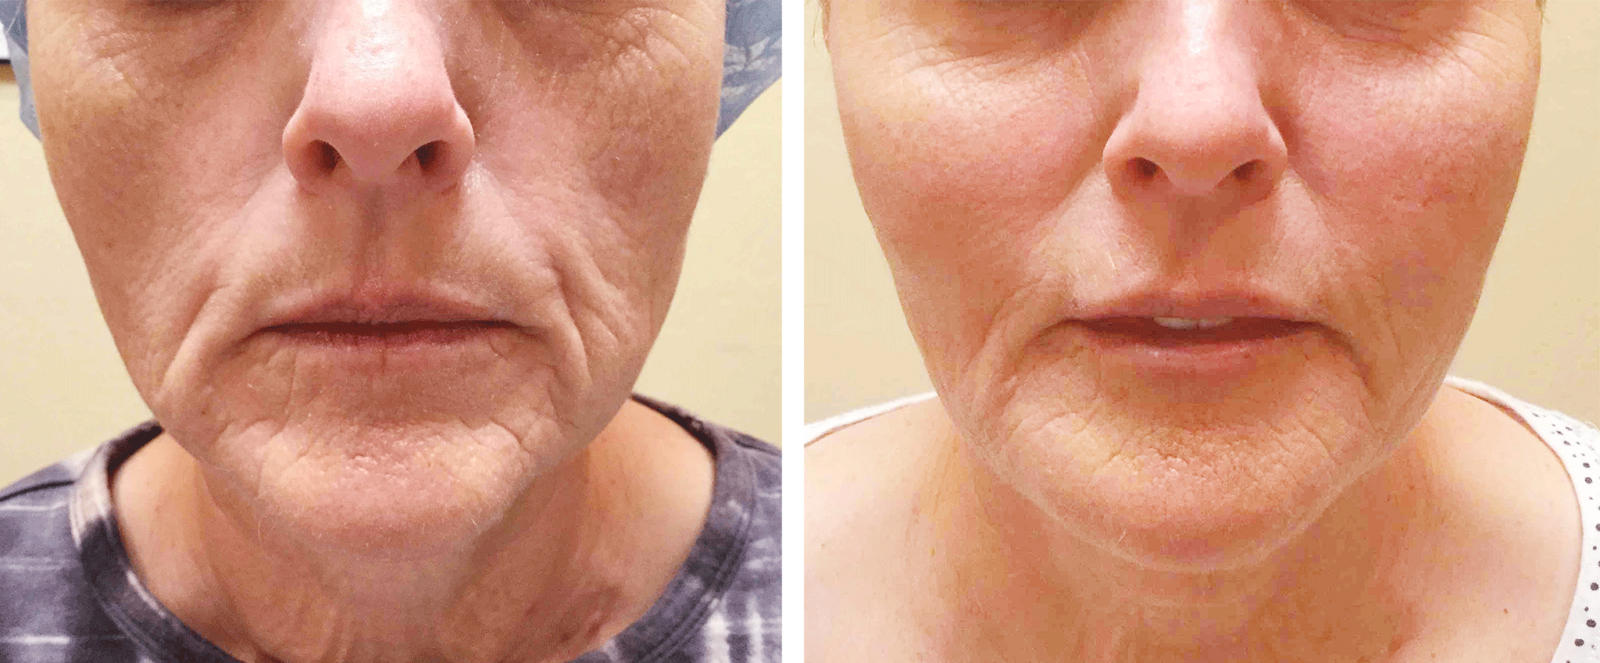 Juvederm facial filler before and after photo no. 1